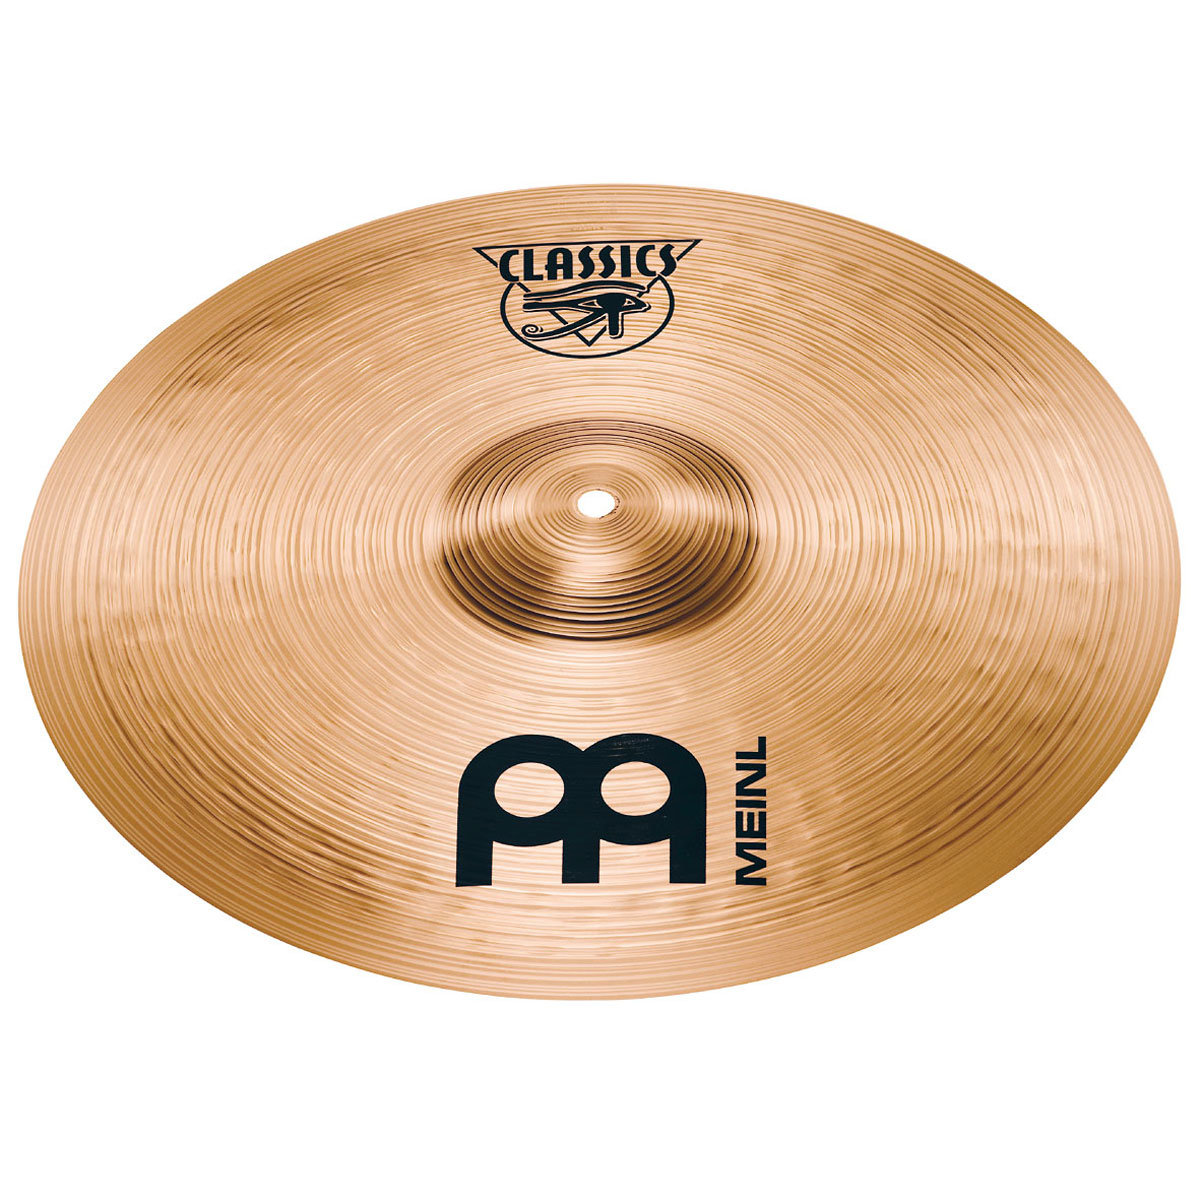 "Meinl 22"" Classic Medium Ride Cymbal"